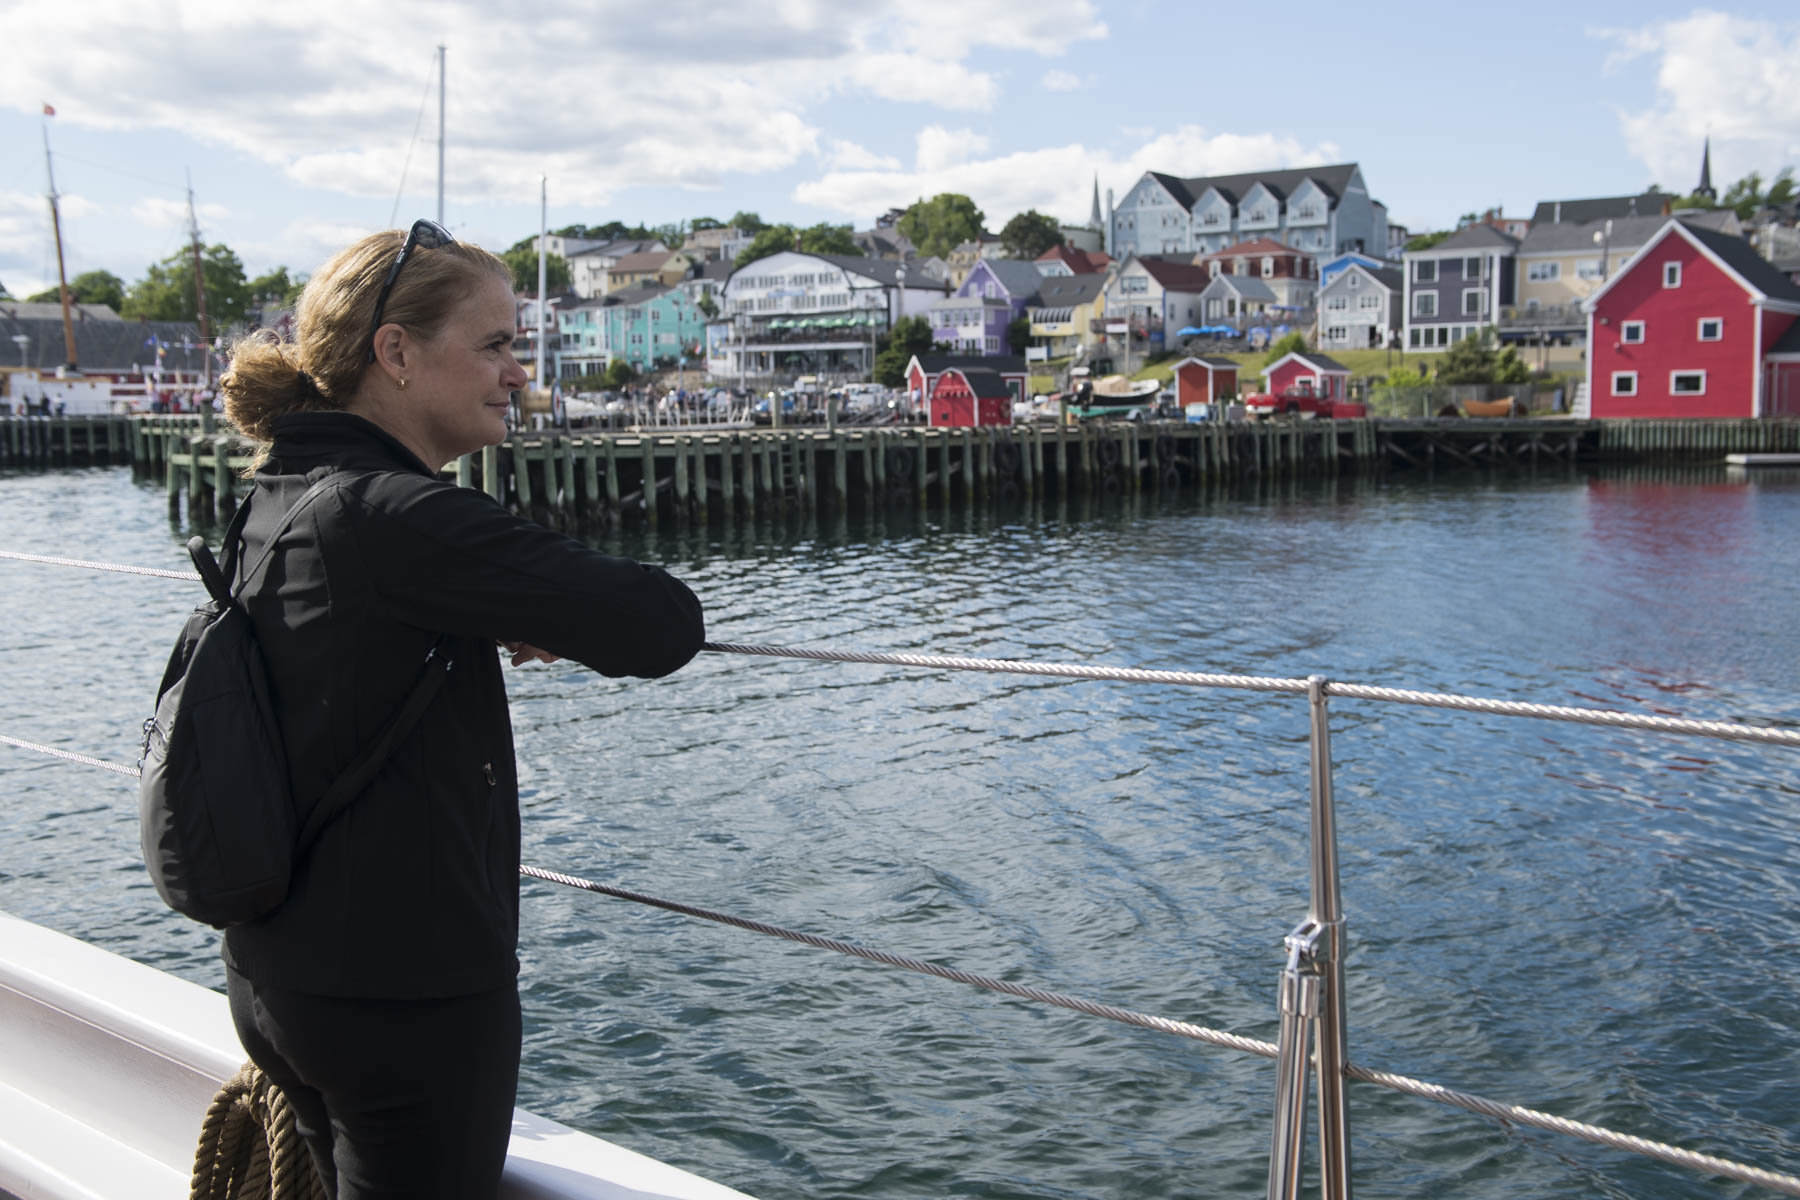 Her Excellency admiring the beautiful landscape as the Bluenose II sailed around the bay.